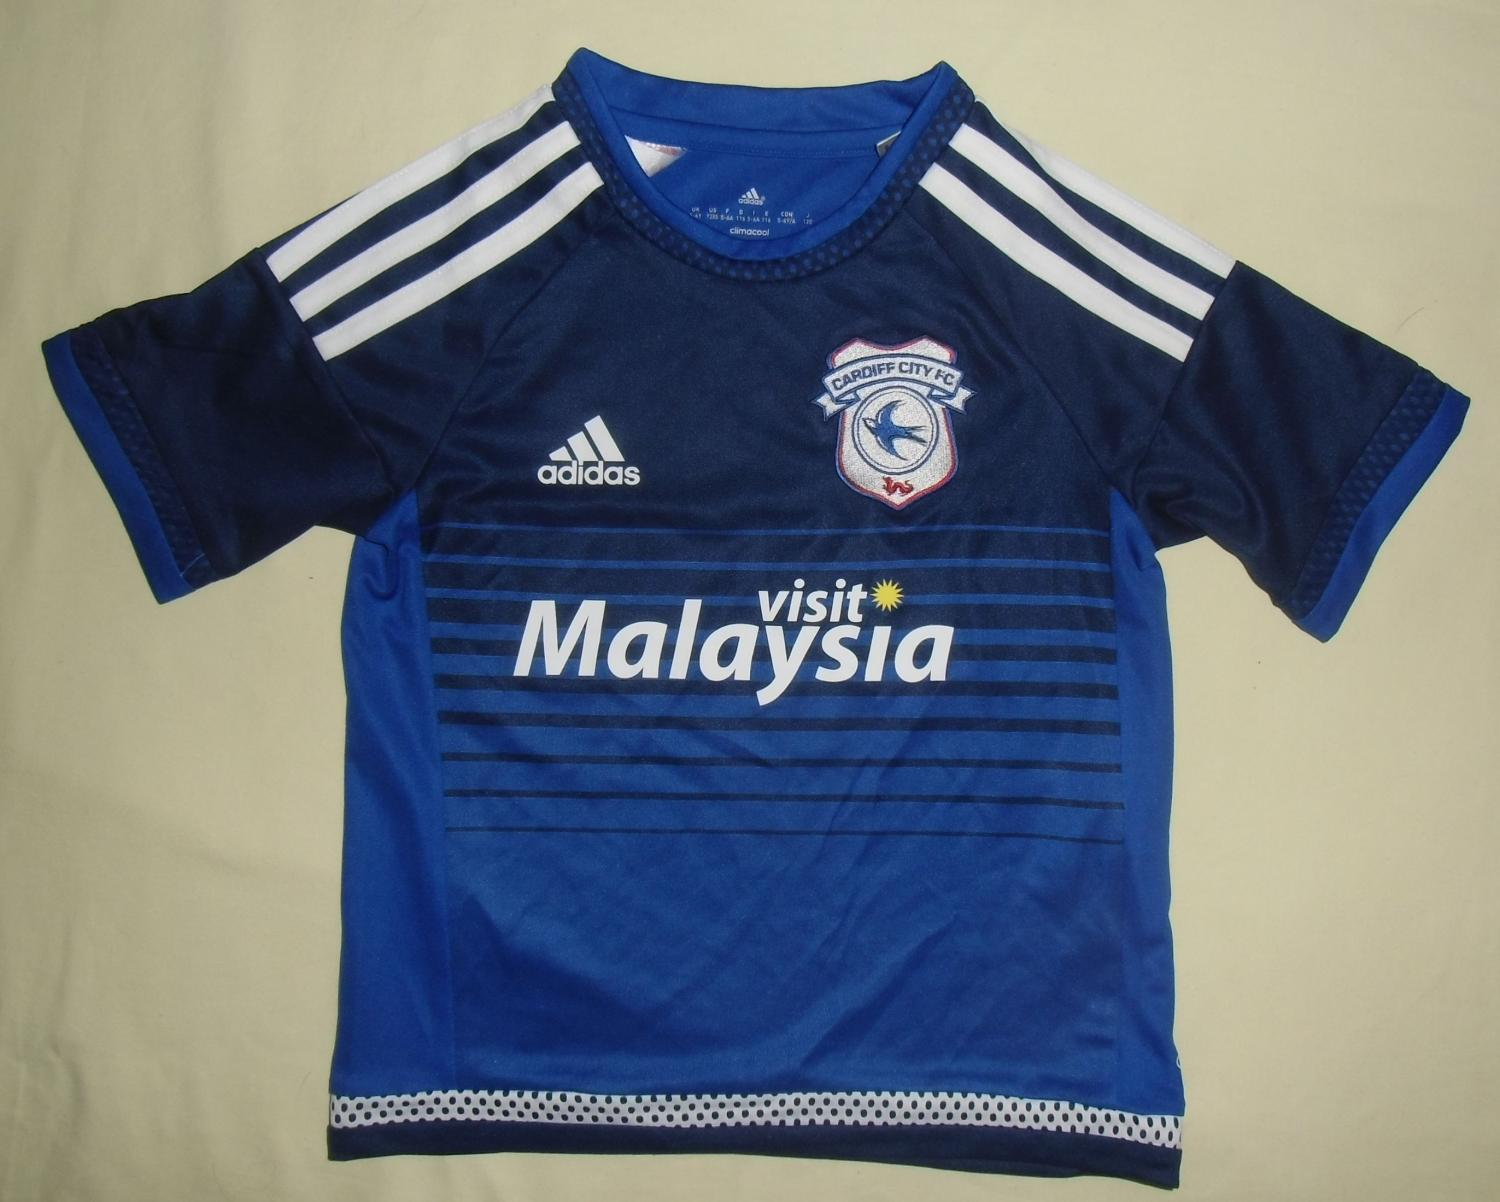 e590713acba Cardiff City Home maglia di calcio 2015 - 2016. Sponsored by Visit ...